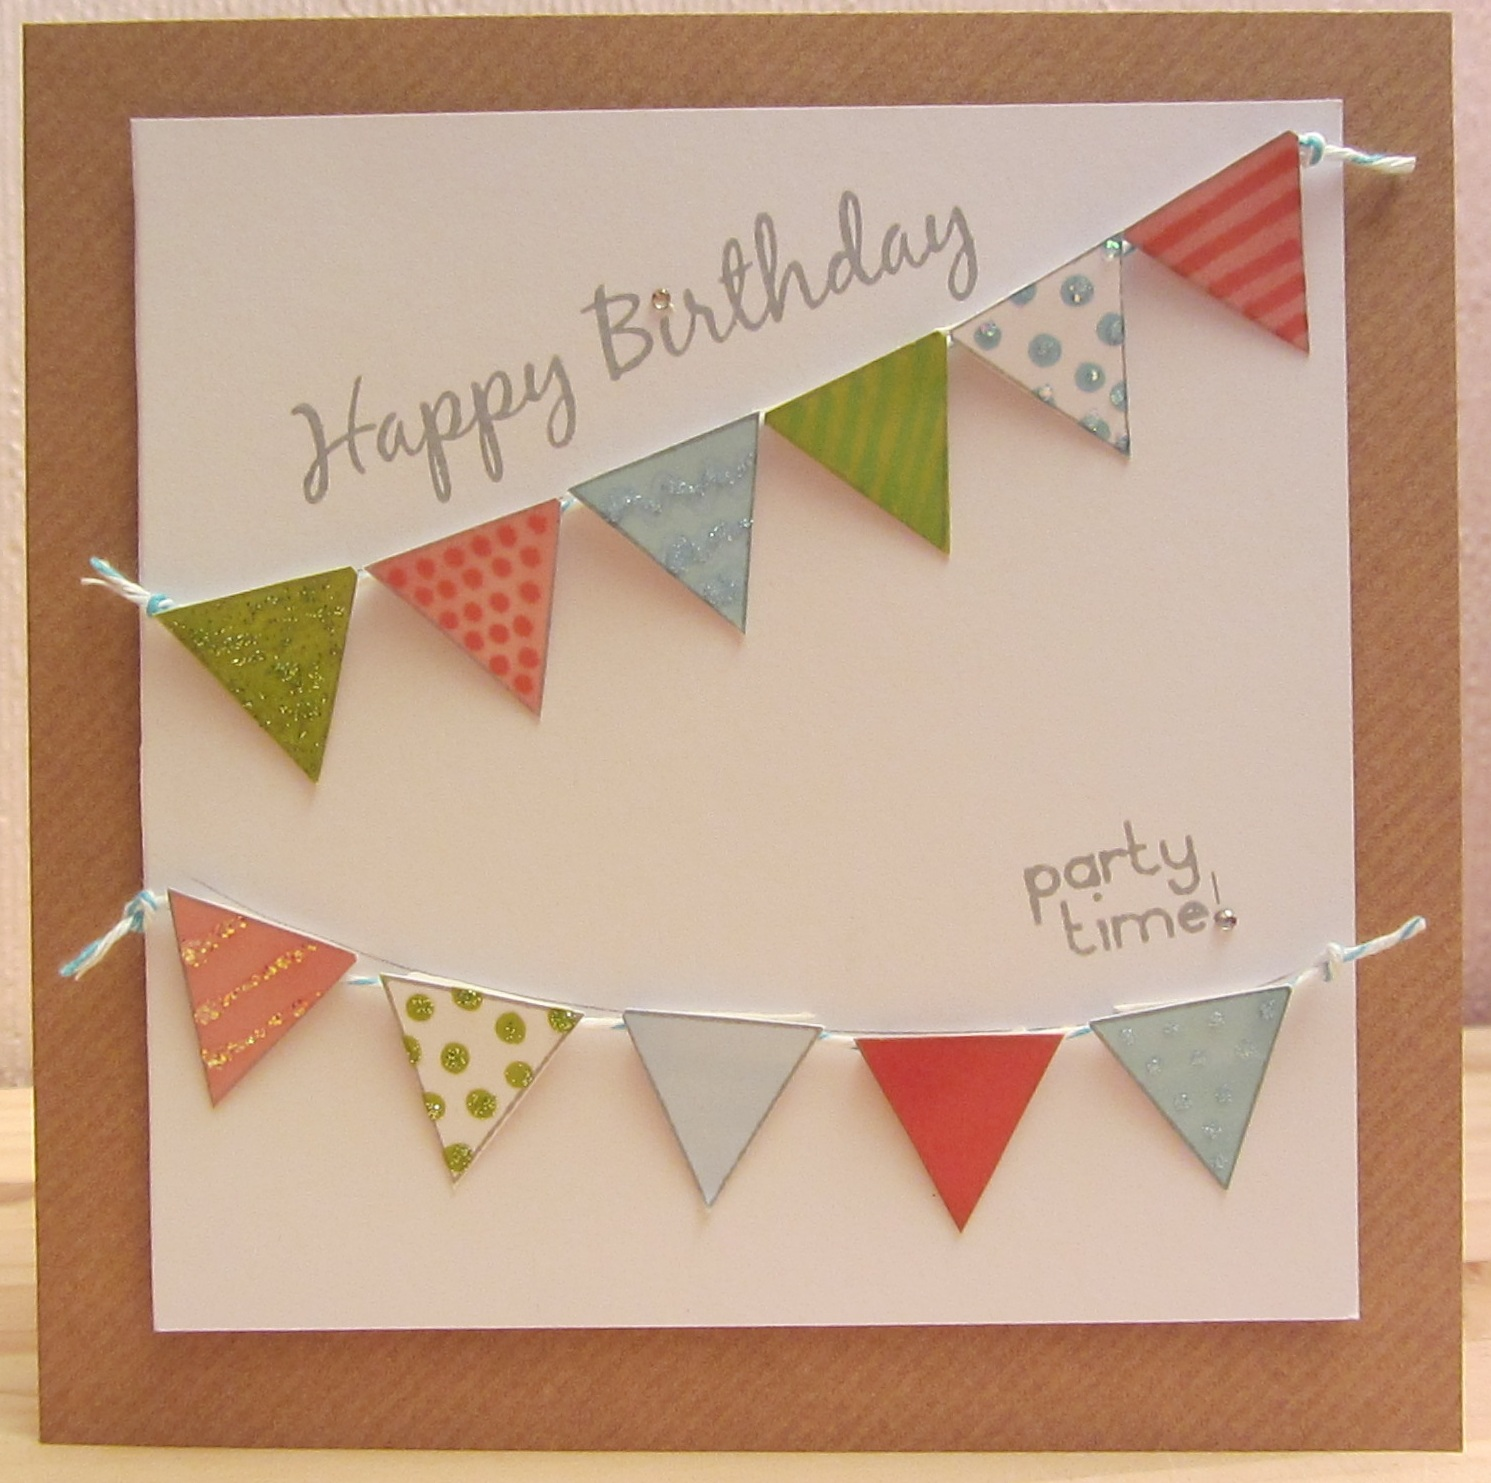 10 Graceful and Attractive Birthday Cards to Send Your Wish to – Handmade Happy Birthday Cards